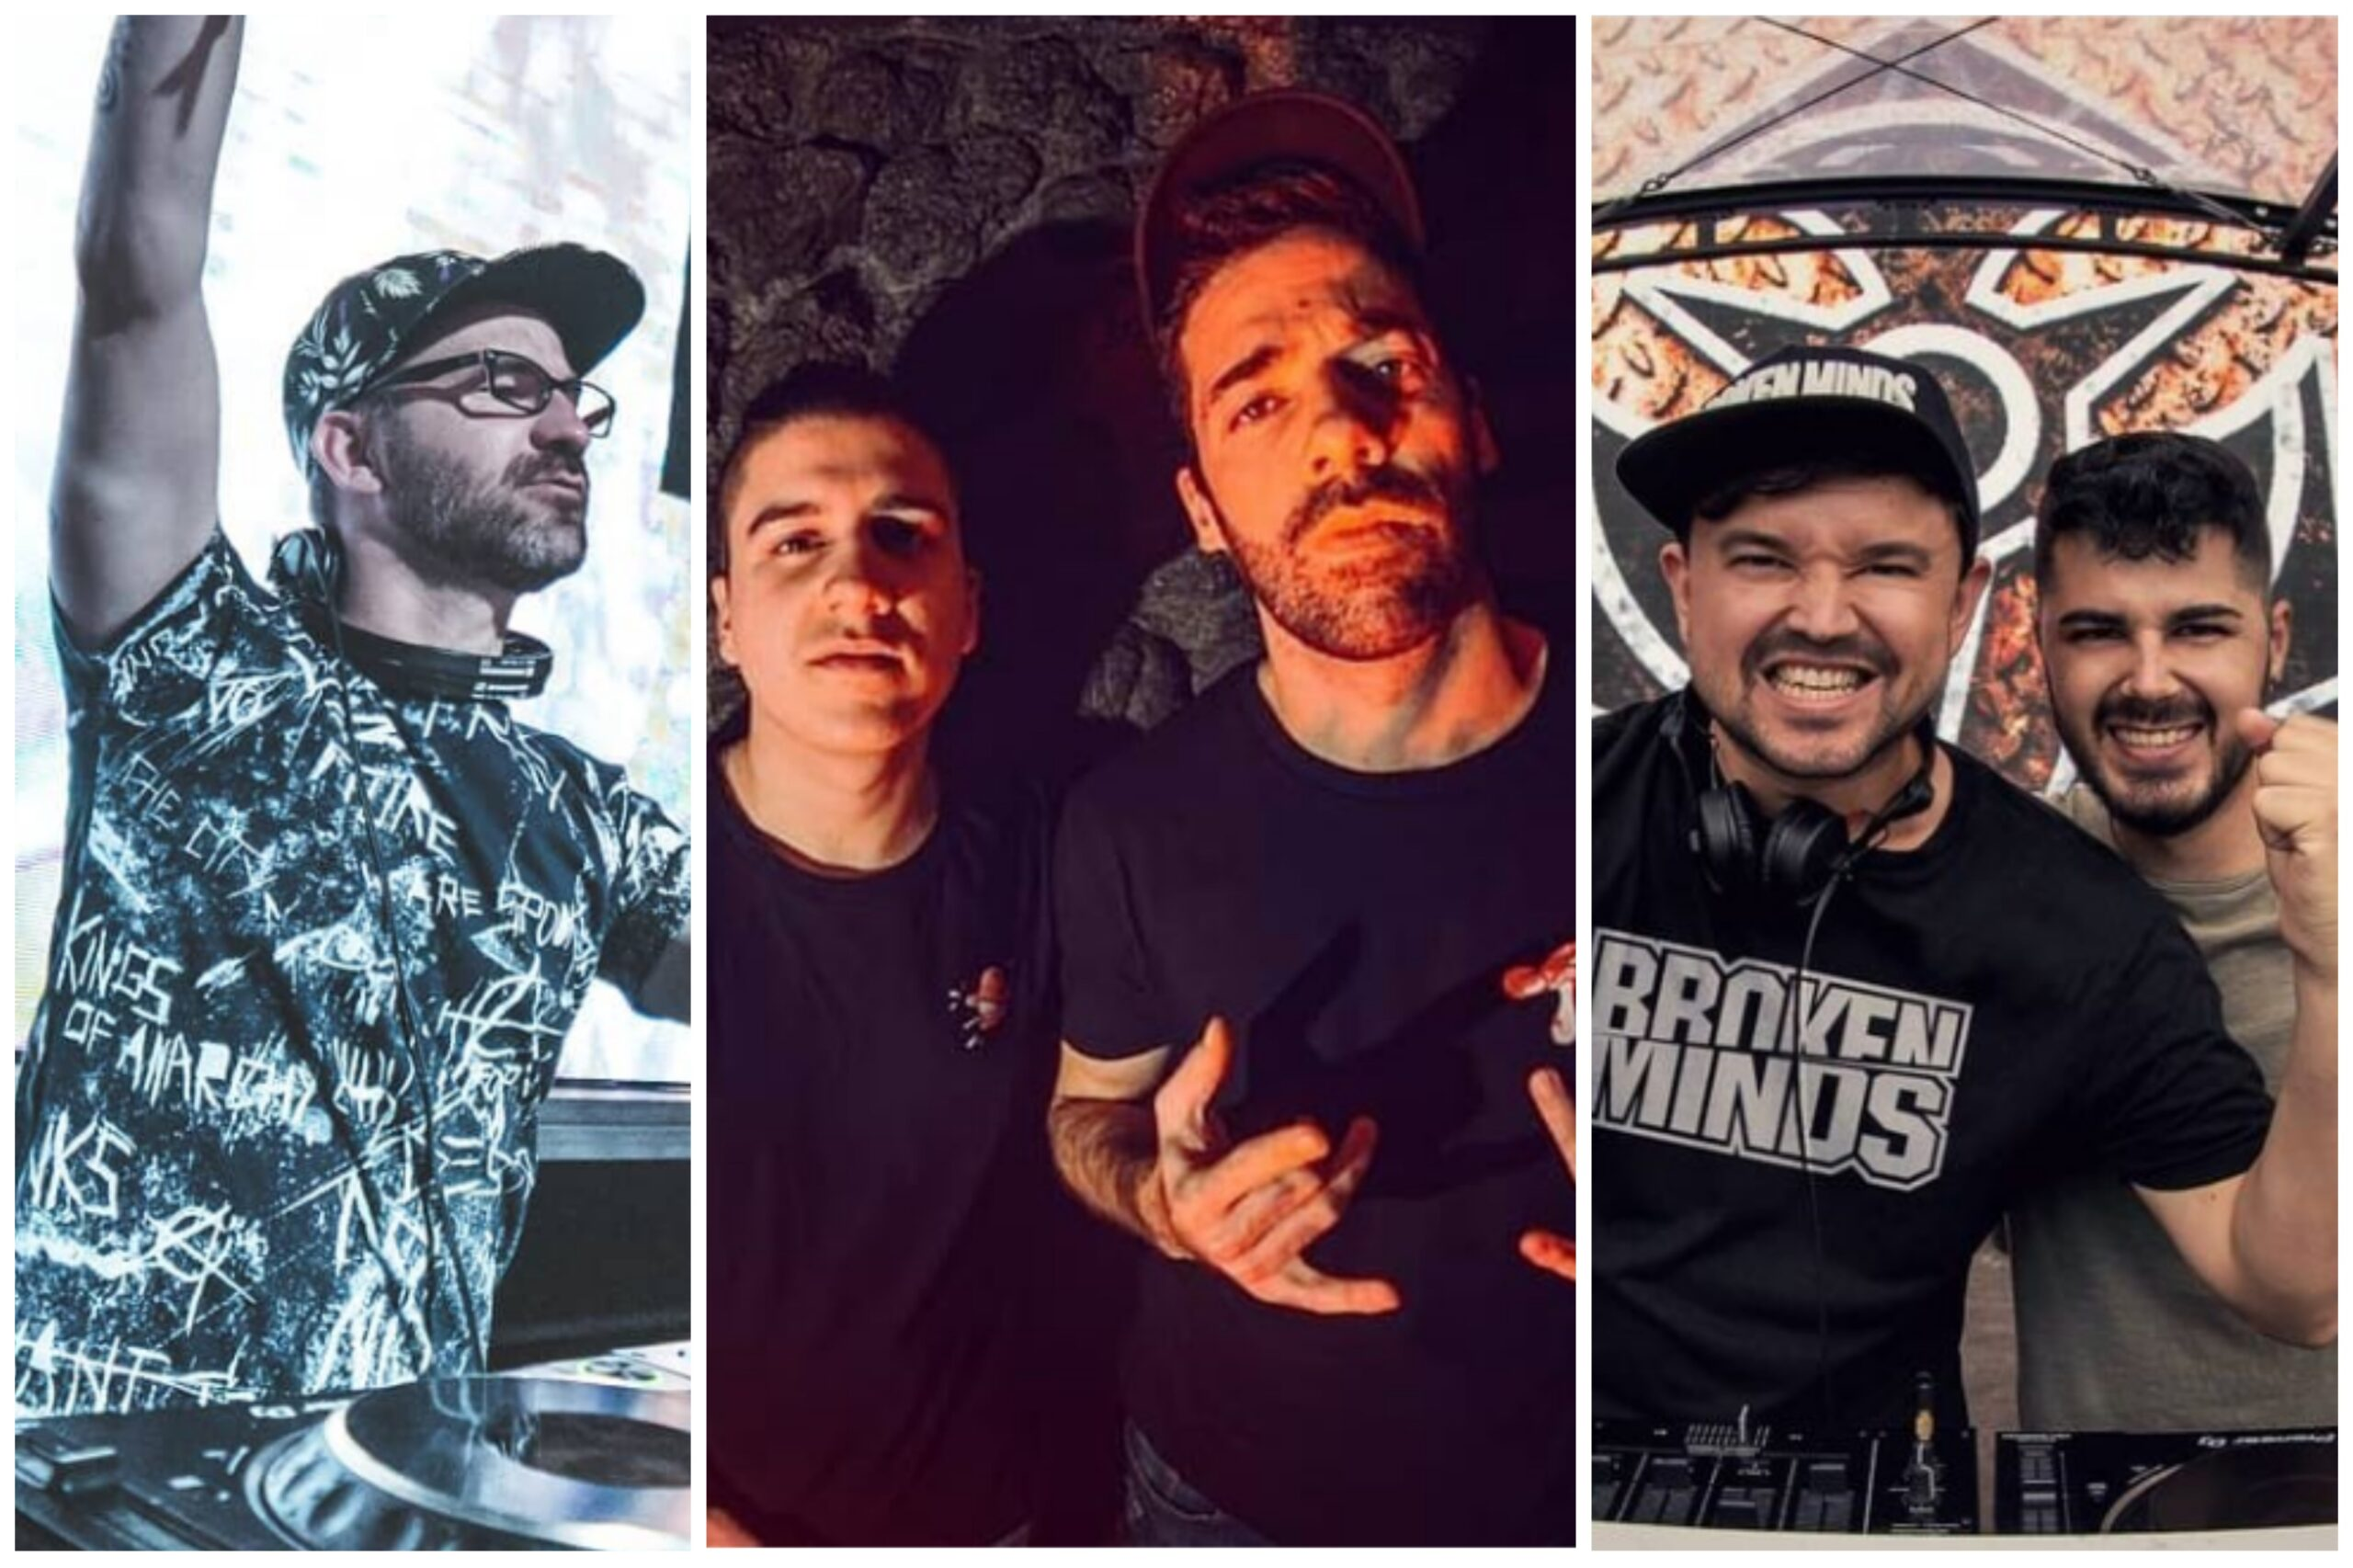 Dany Bpm, The Straikerz y Broken Minds lanzan tema